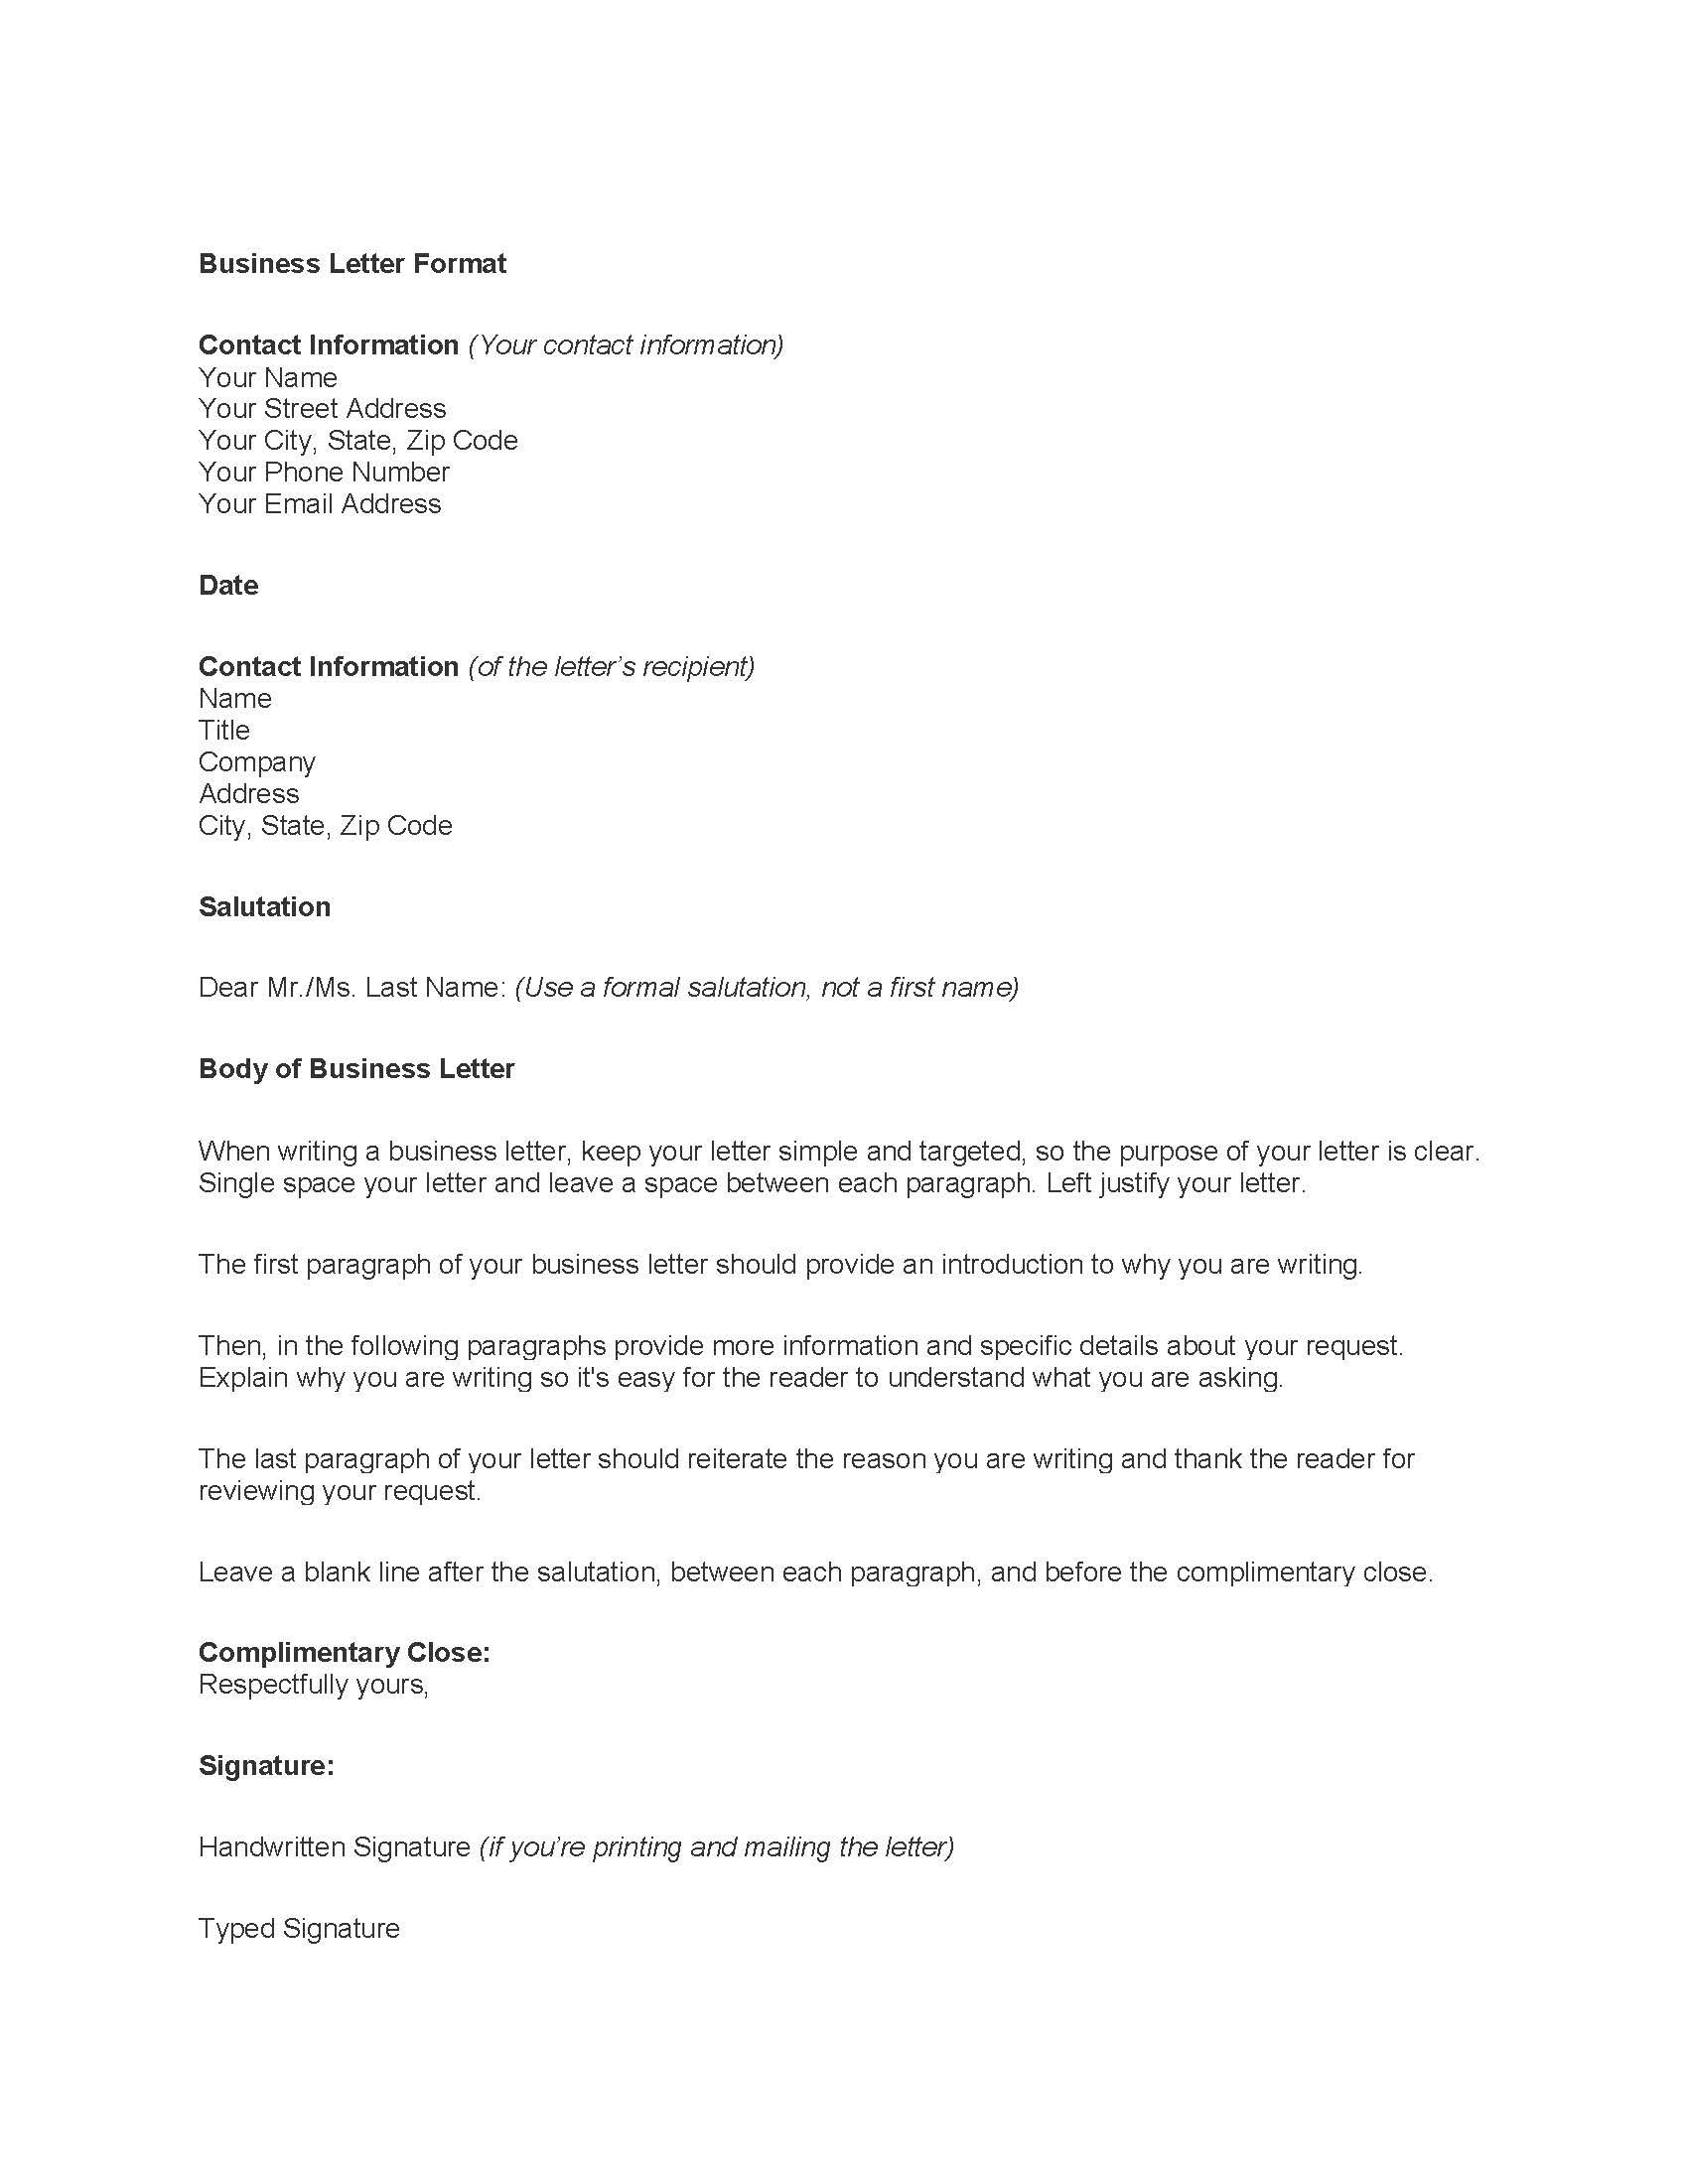 templategeneralbusinessletterbusinesslettersamplephoto – Sample Standard Business Letter